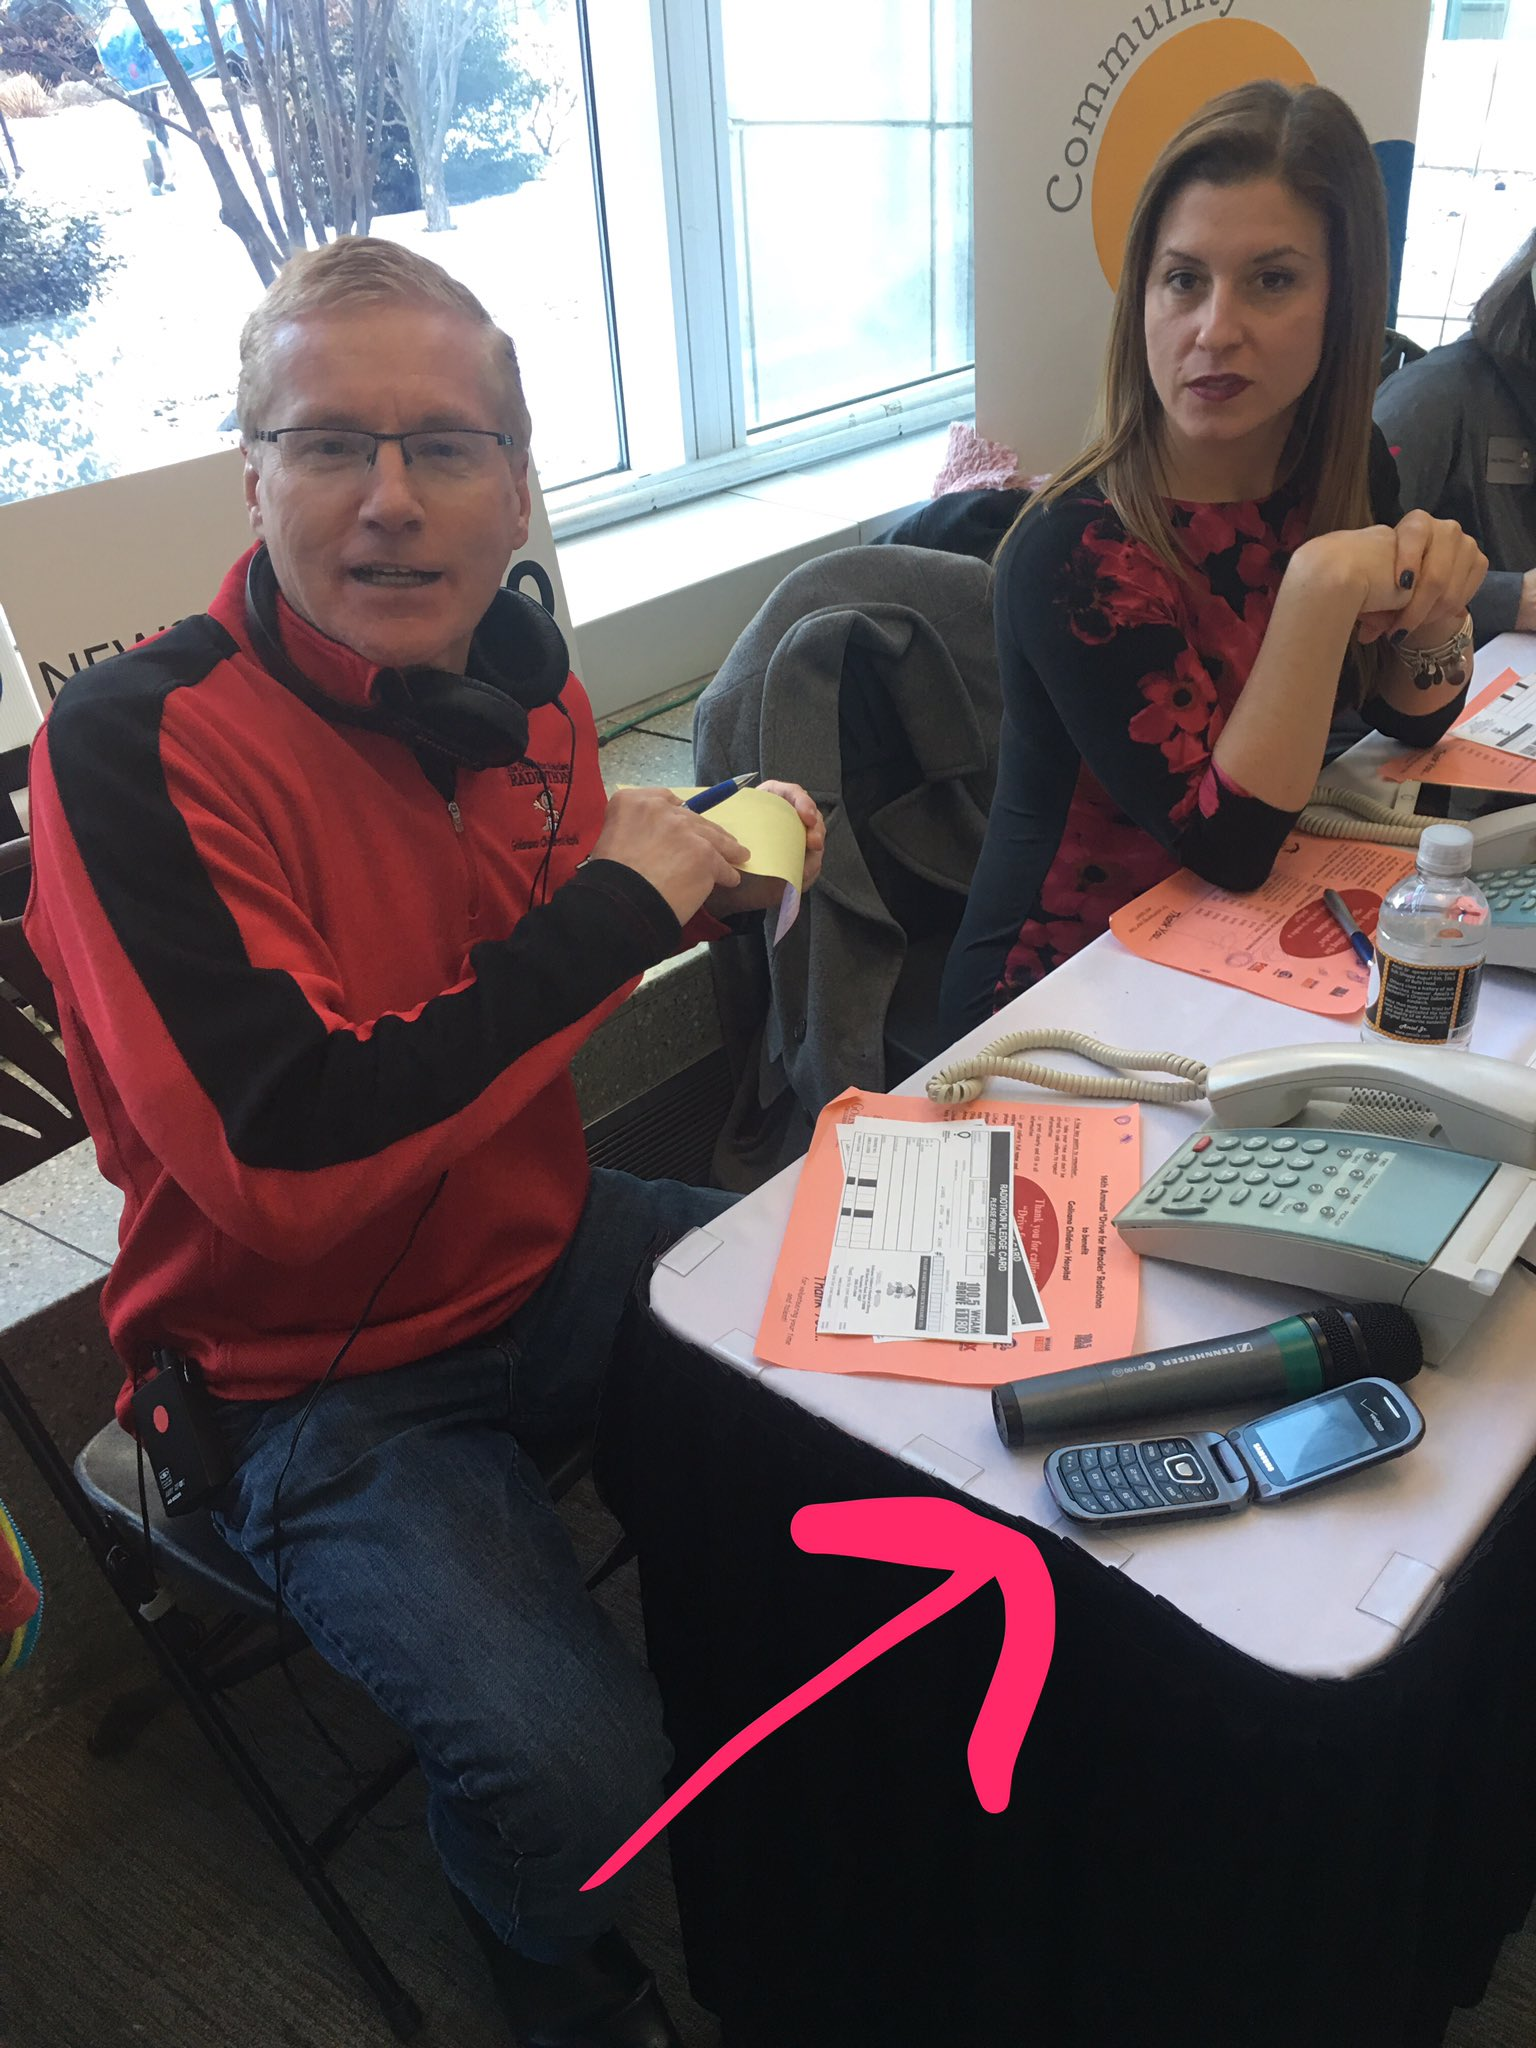 This is Pete Kennedy.  Pete has a flip phone.  Don't be like Pete. #DriveForMiracles https://t.co/XddxB1ack1